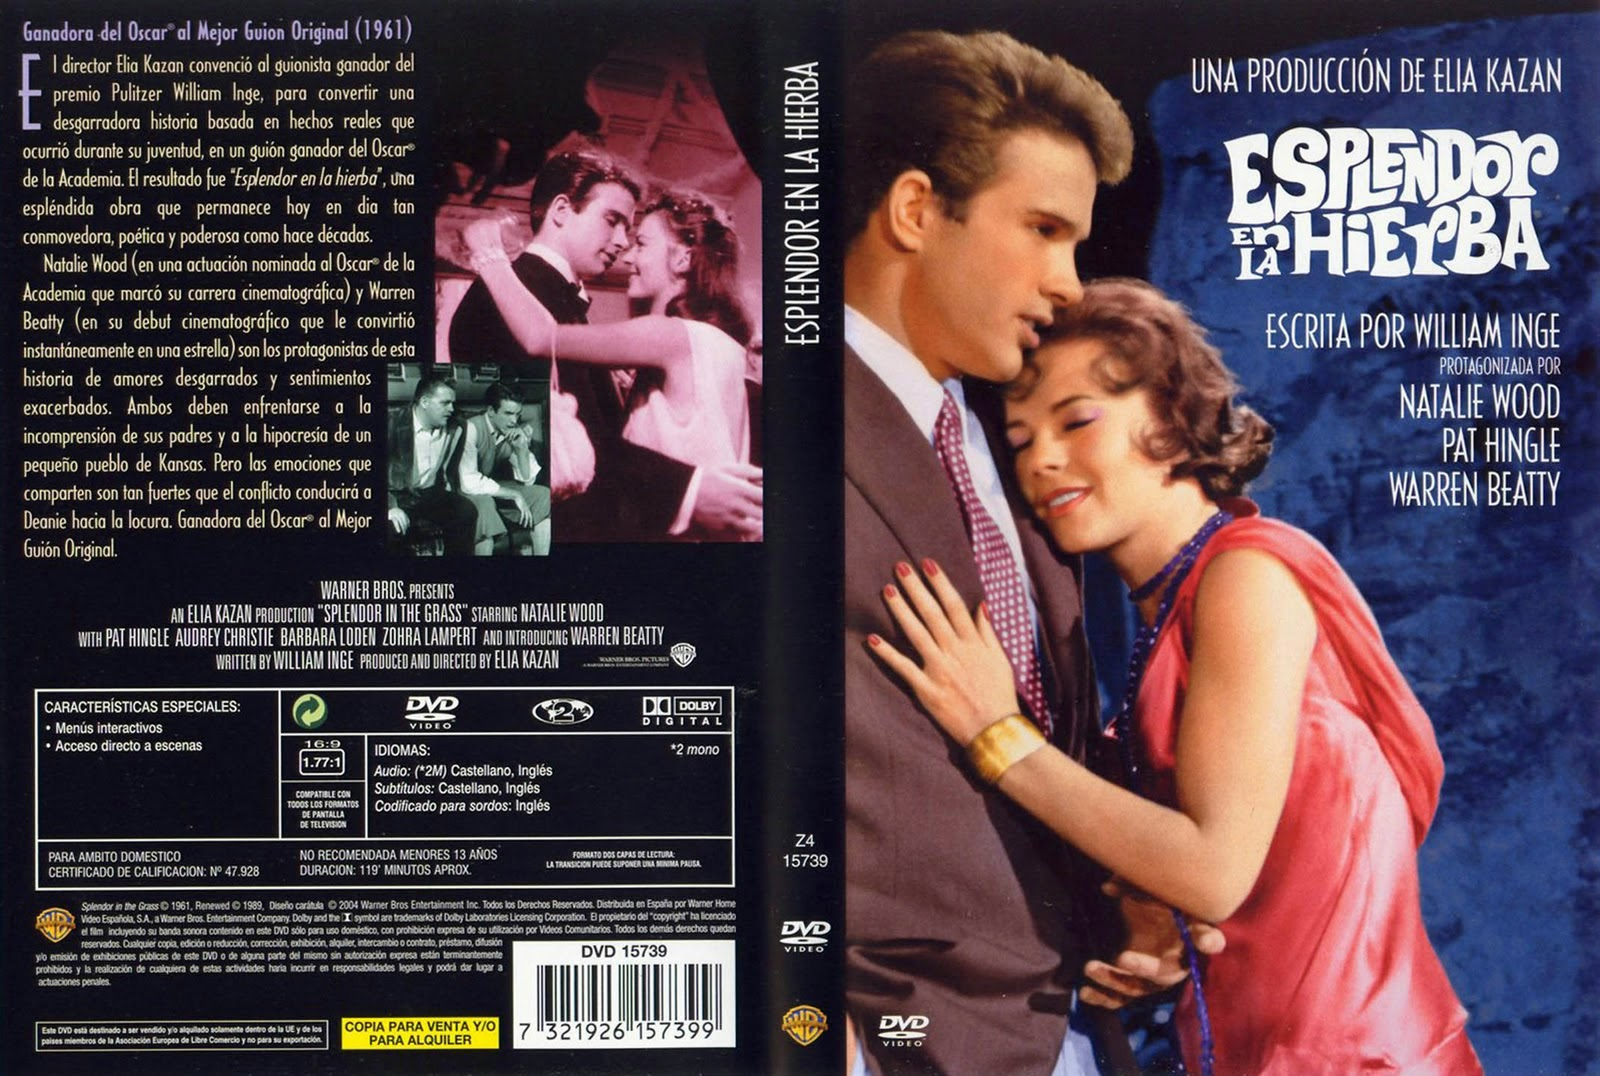 Esplendor en la hierba (1961 - Splendor in the Grass)